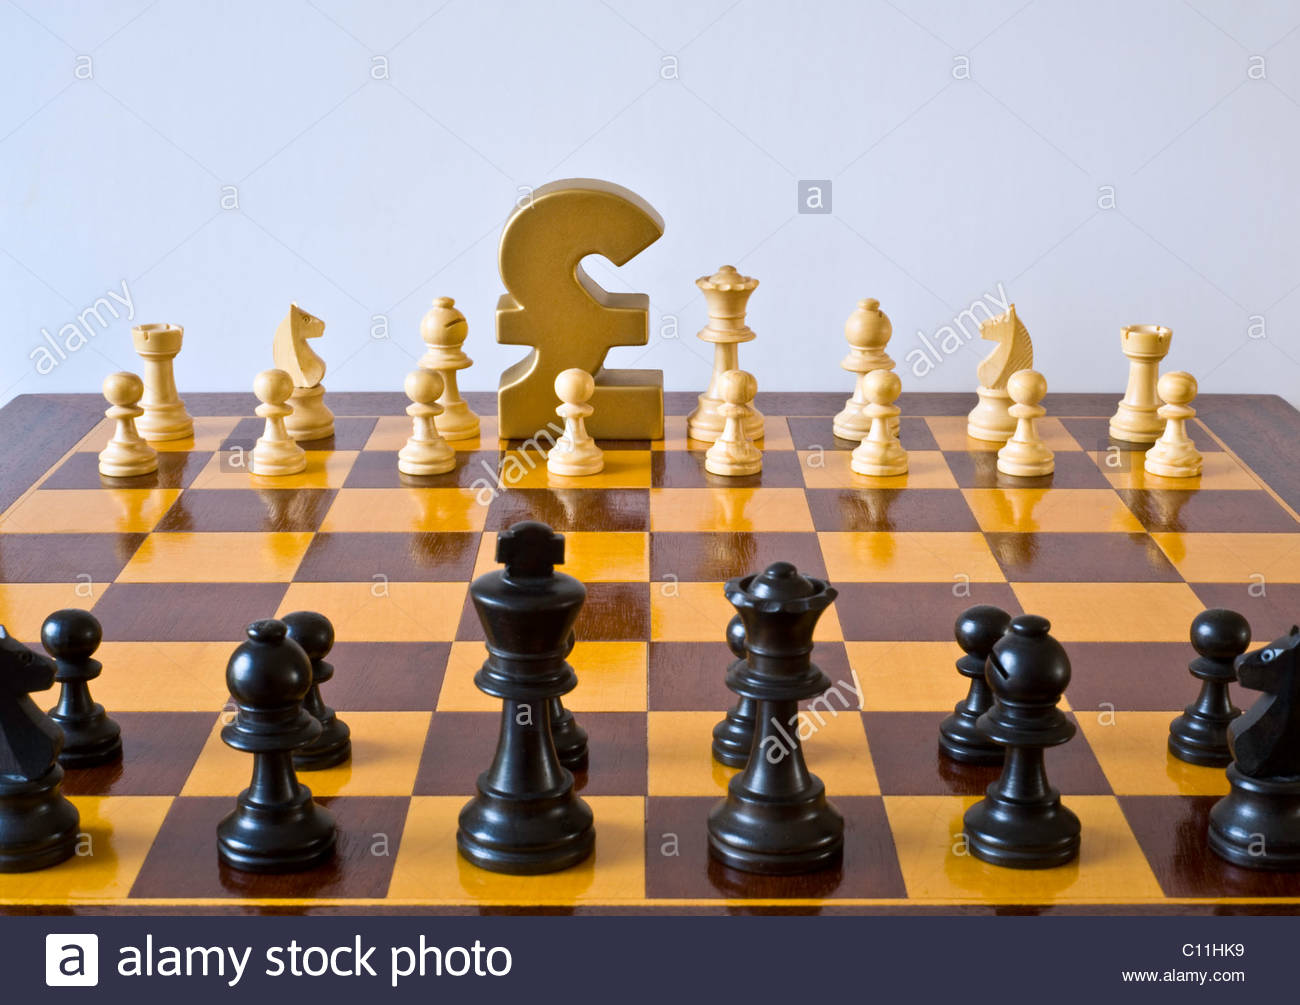 British Pound Sterling Symbol Kings Position Chess Board